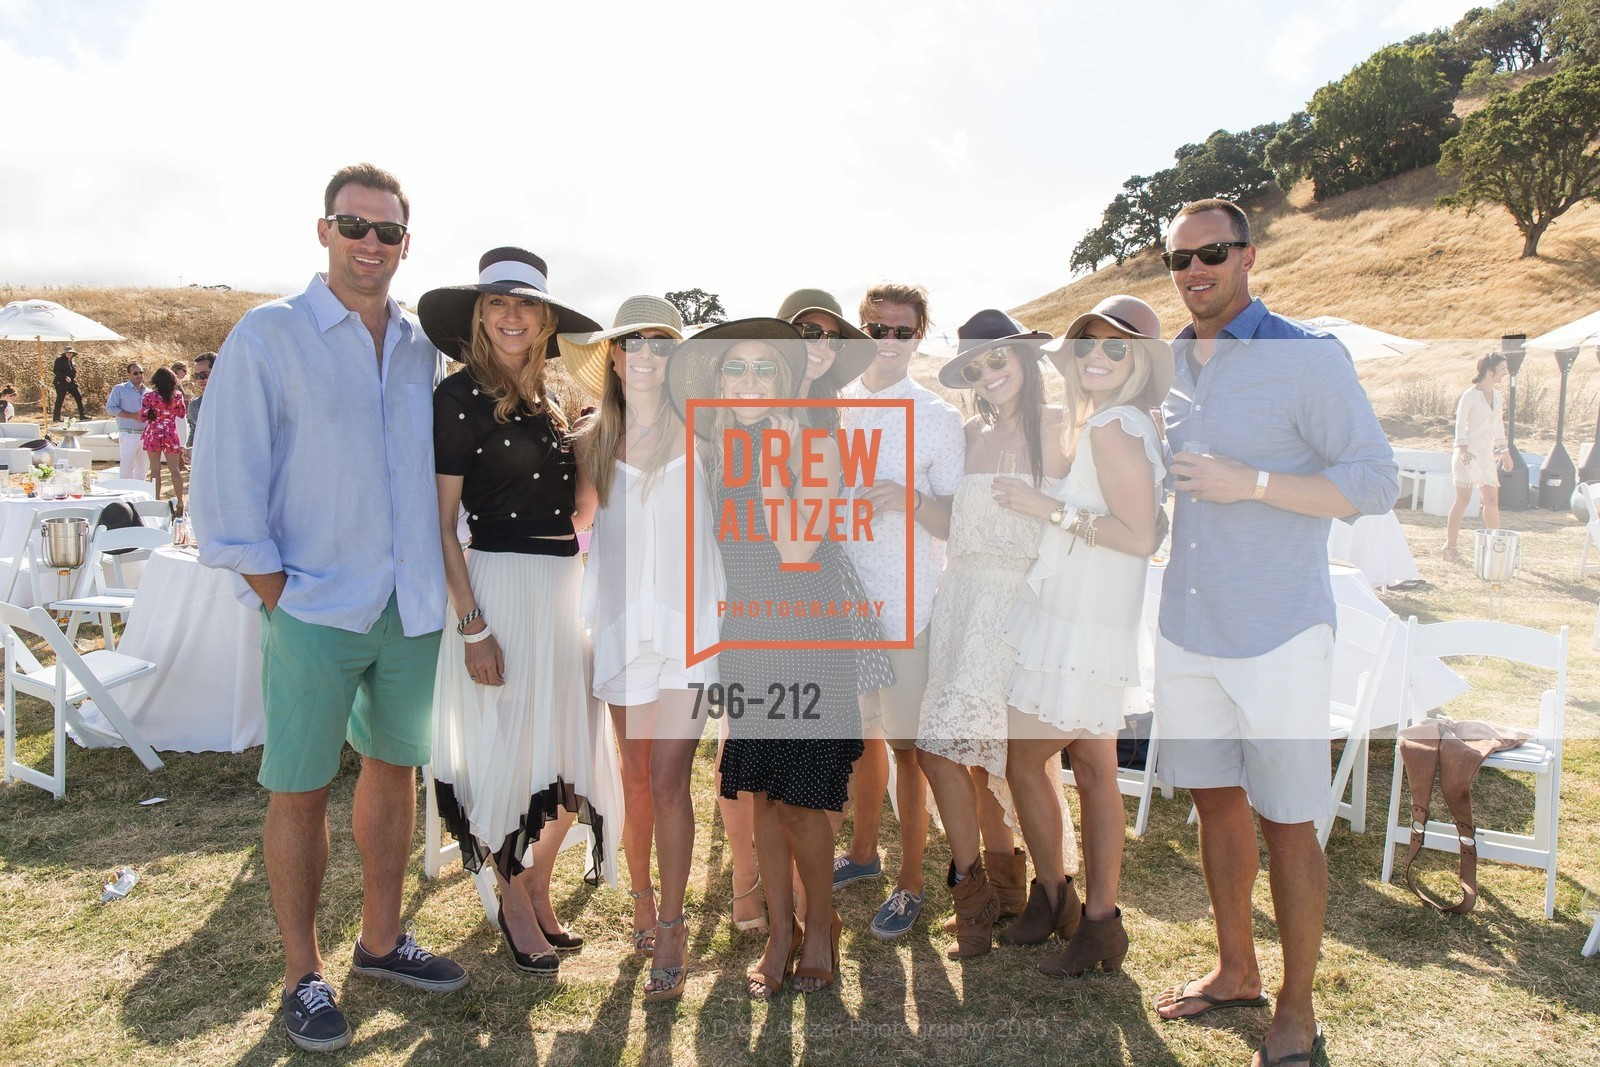 Connor Famulner, Lauren Wolfe, Samantha Hartwell, Jess Perez, Jen Hirsch, Brian Henson, Meredith Kendall, Shane Lyman, Stick & Ball Oyster Cup Polo Tournament, Cerro Pampa Polo Club, July 25th, 2015,Drew Altizer, Drew Altizer Photography, full-service agency, private events, San Francisco photographer, photographer california